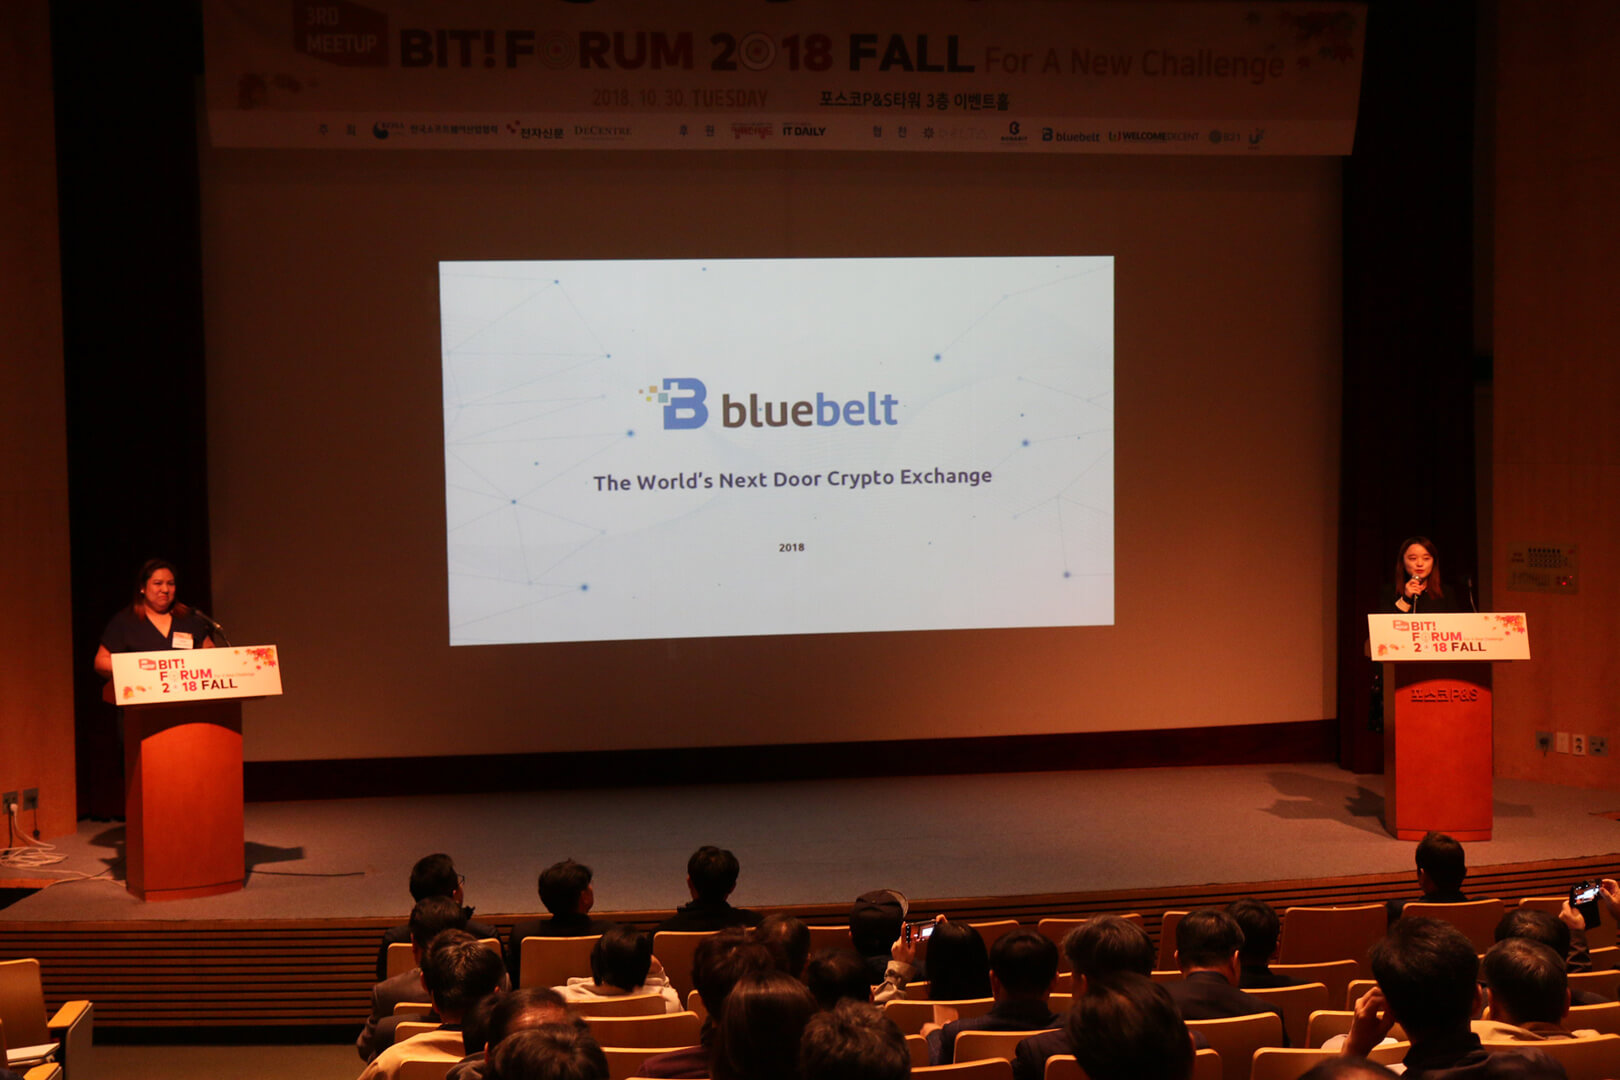 BLUEBELT at Bit! Forum 2018 FALL in South Korea